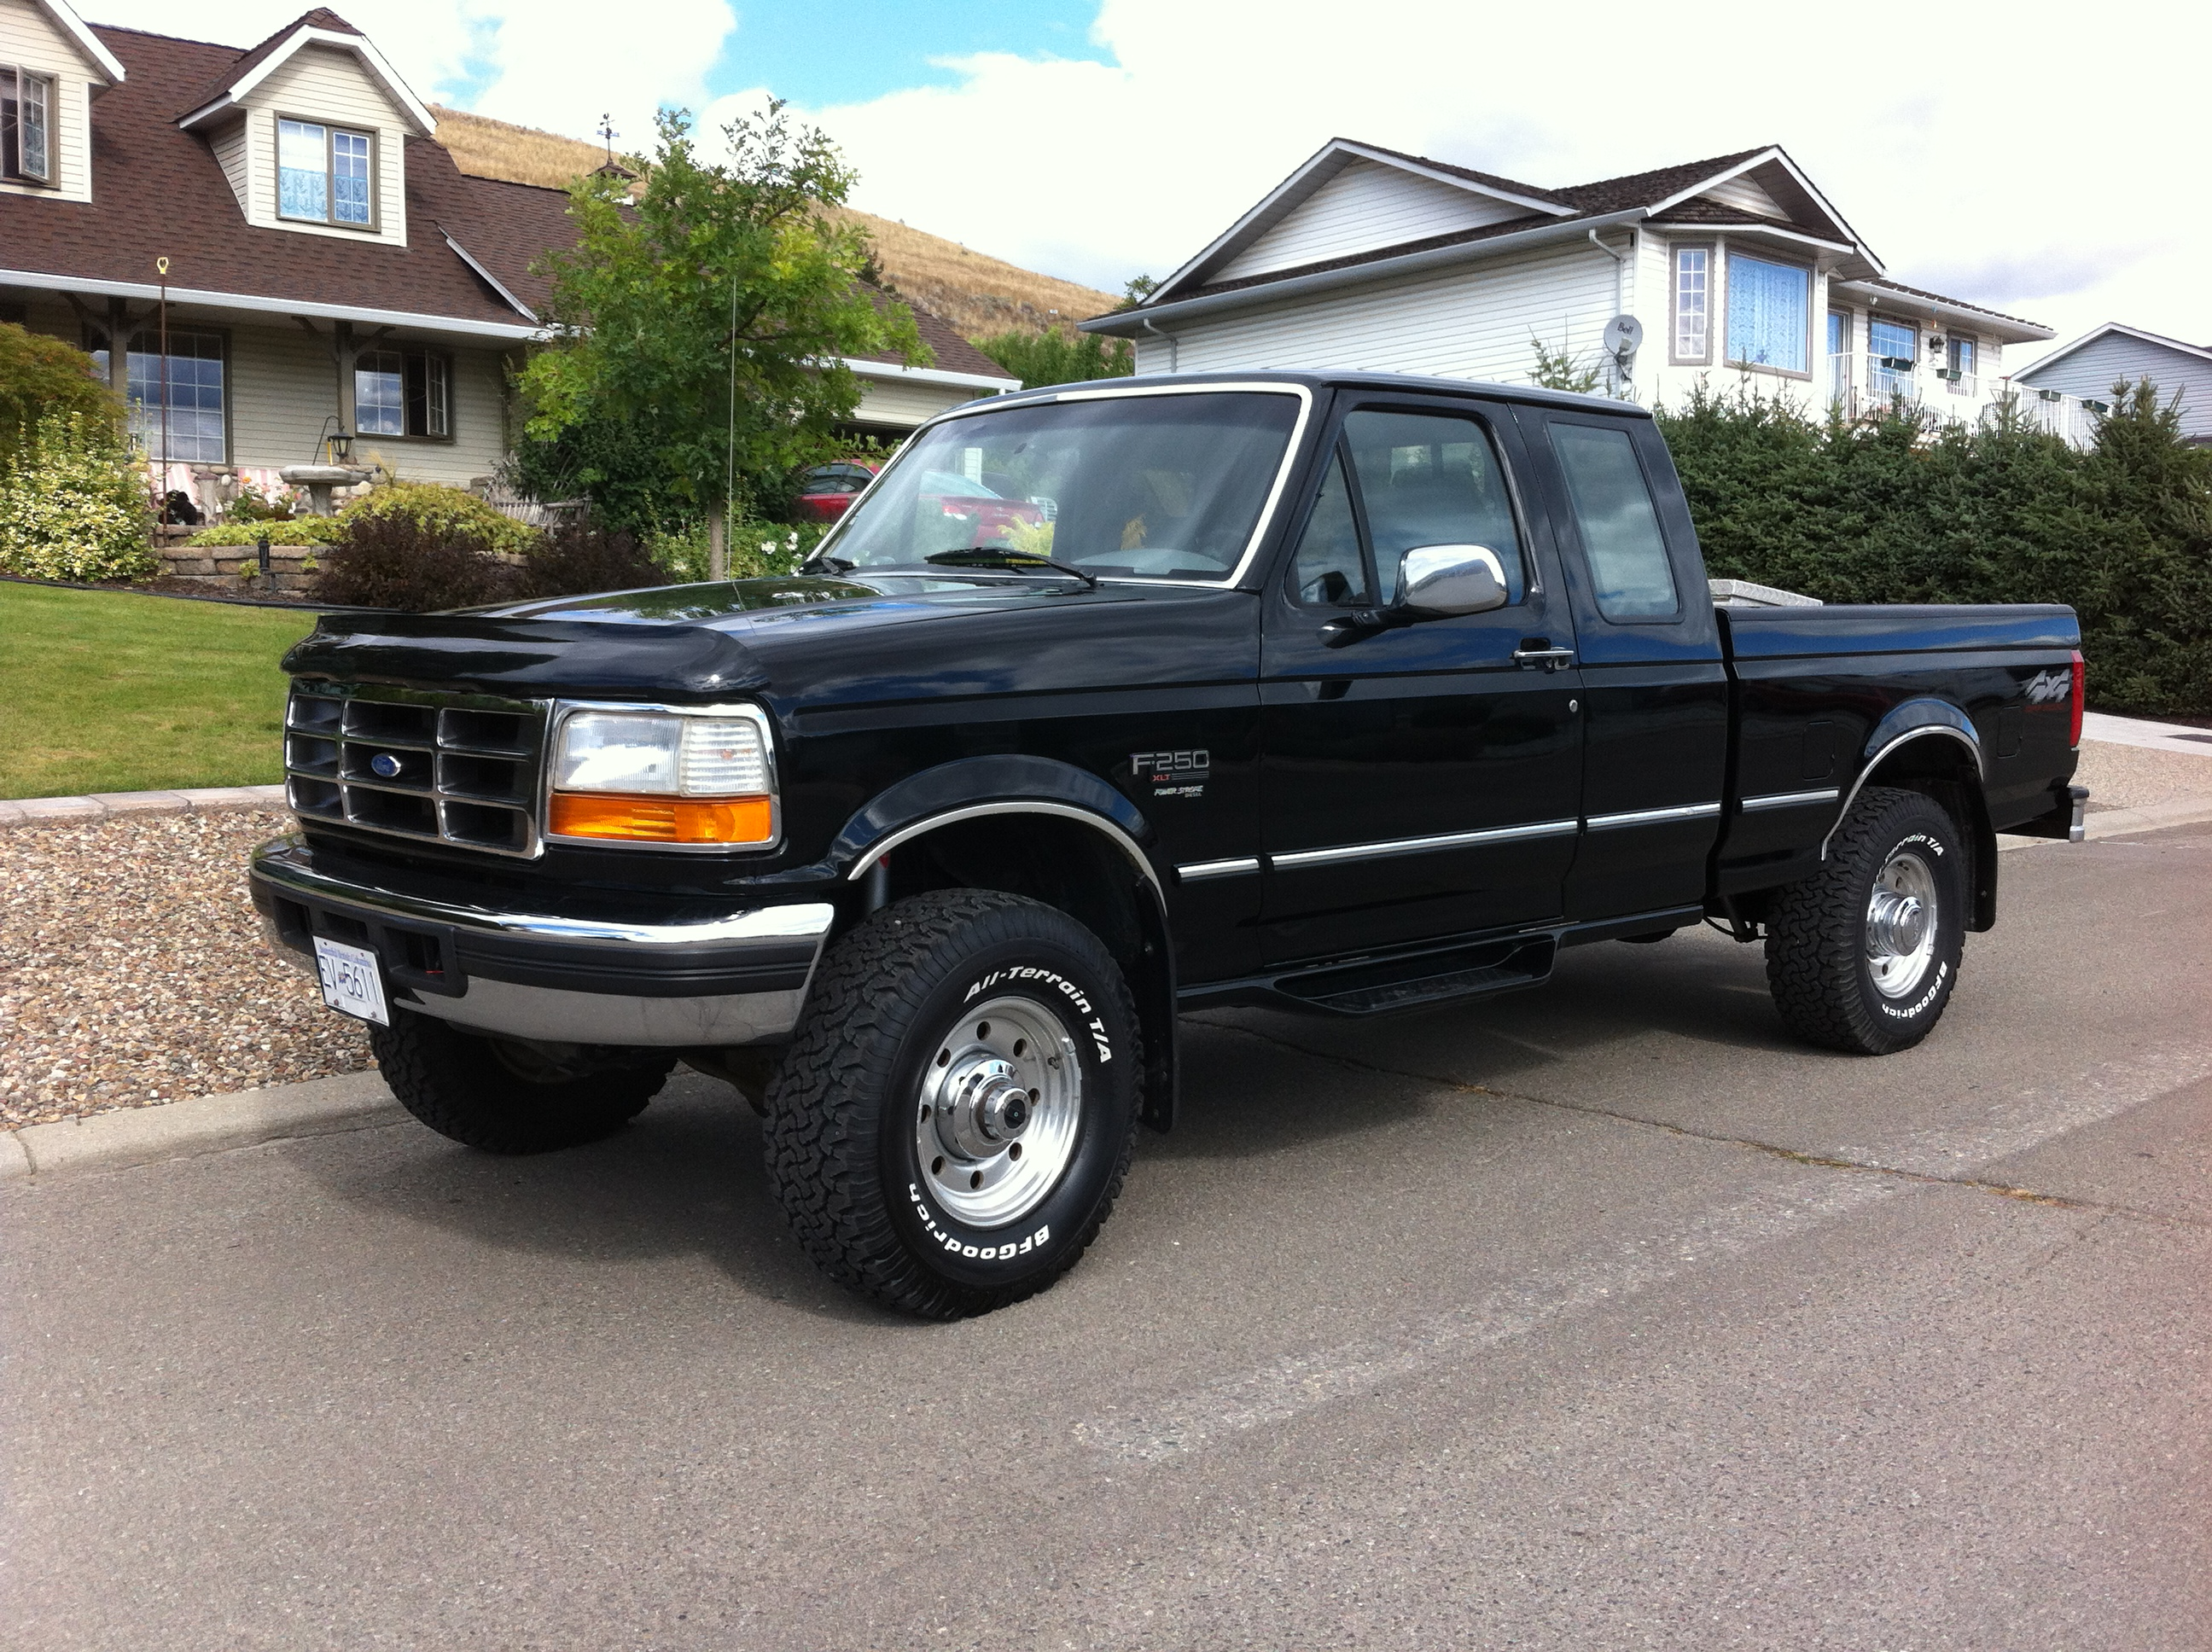 1996 Ford F-250 #21